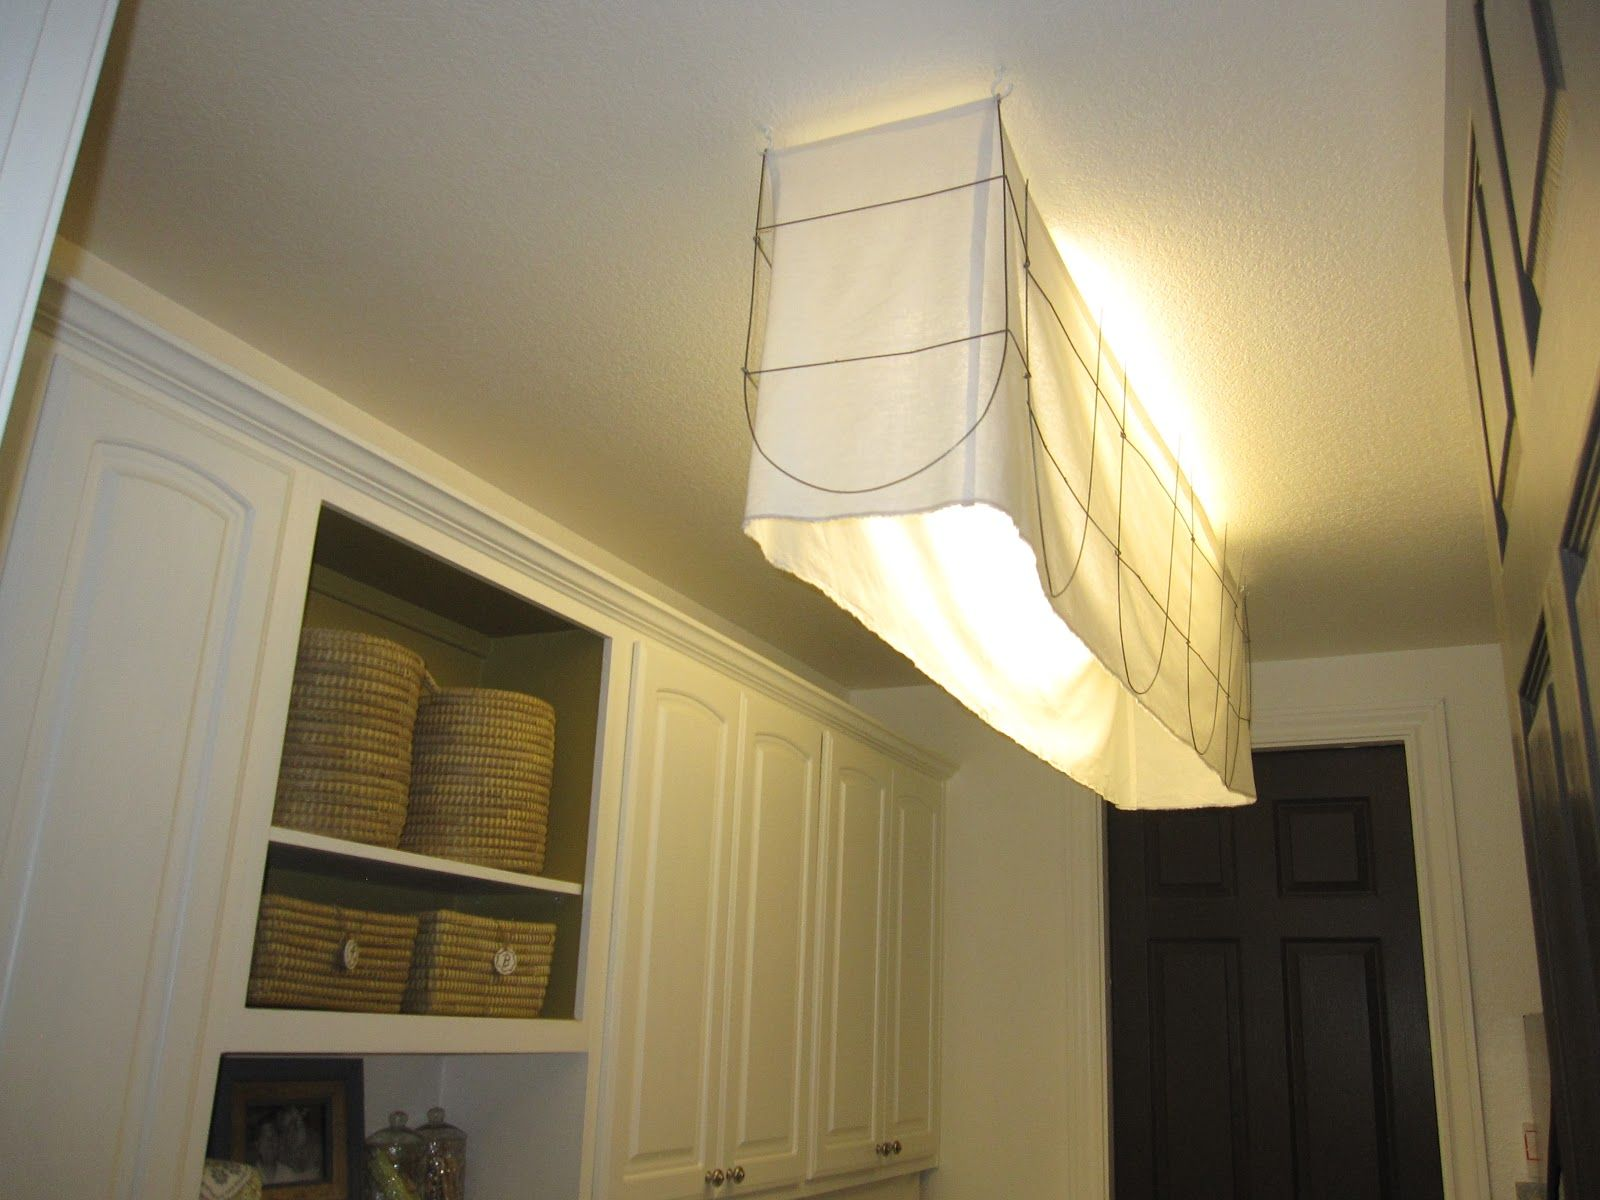 How to cover an ungly fluorescent light fixture